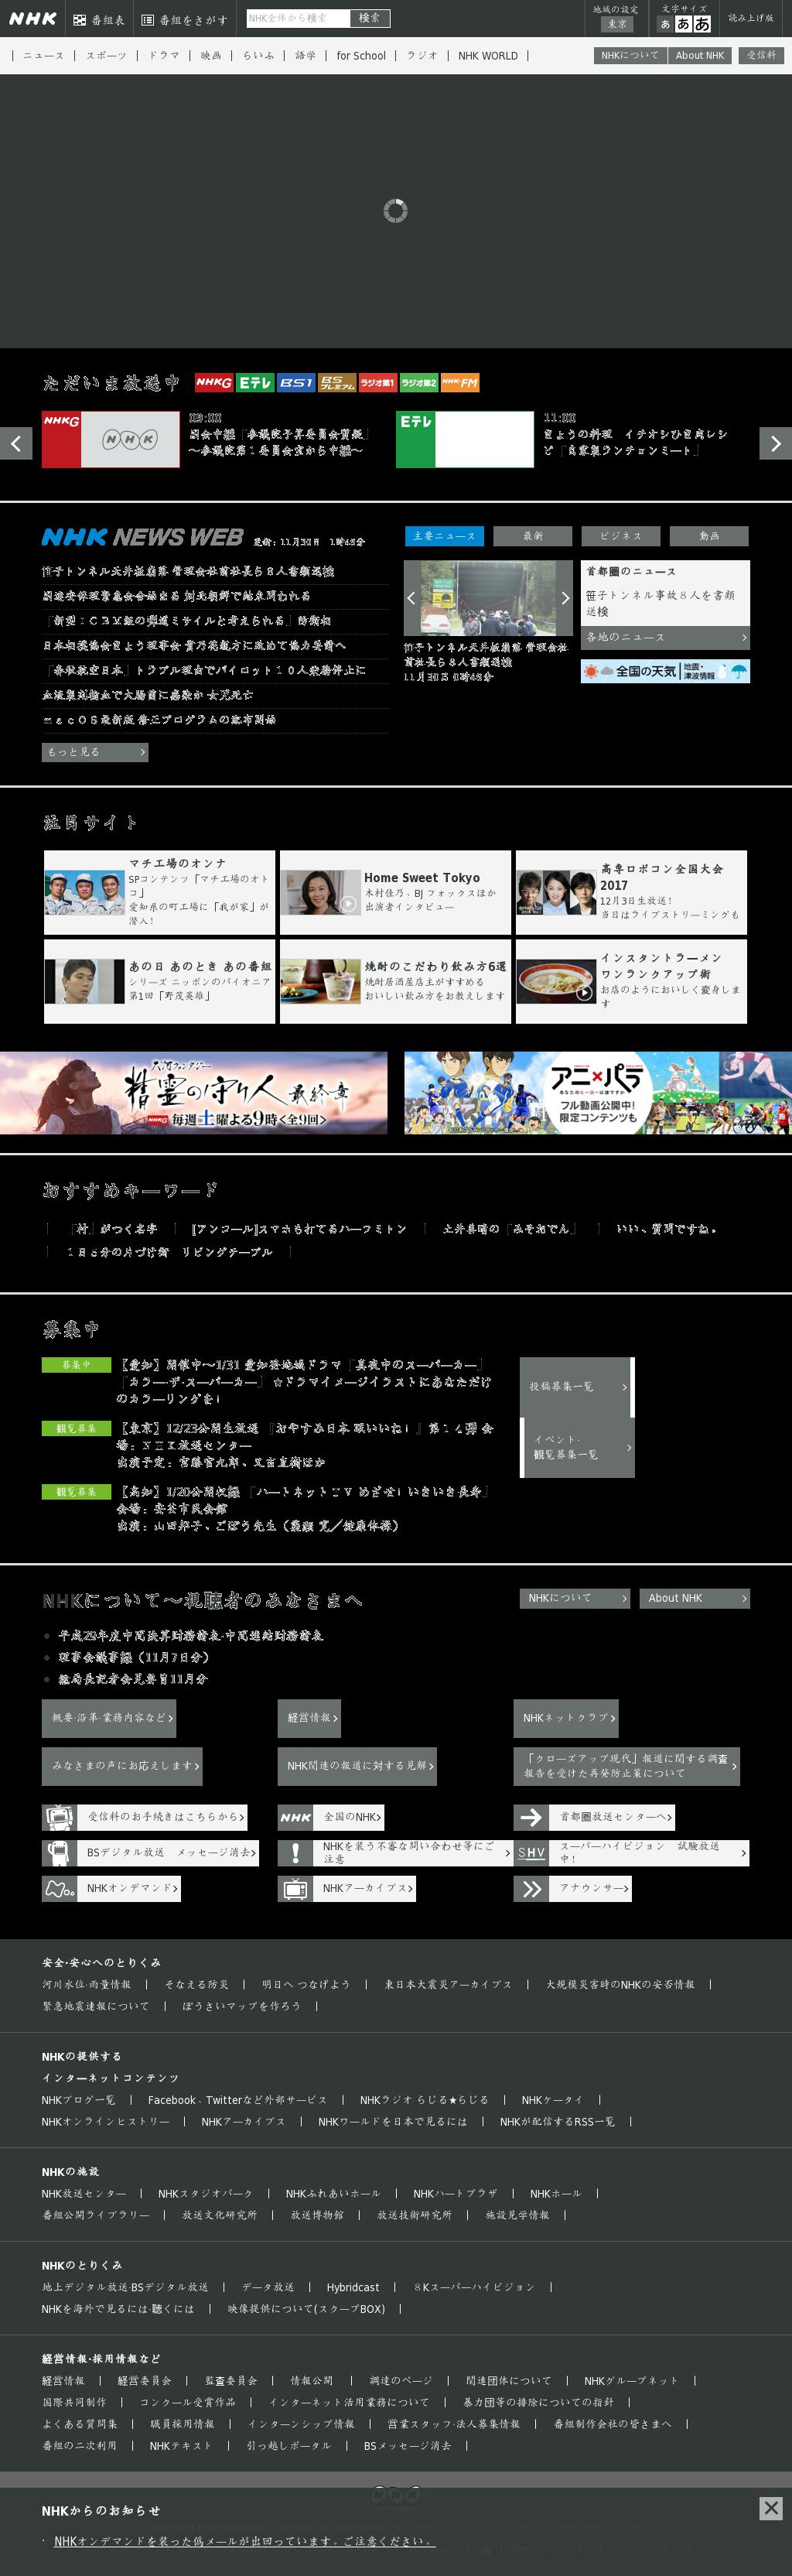 NHK Online at Monday March 12, 2018, 1:14 a.m. UTC